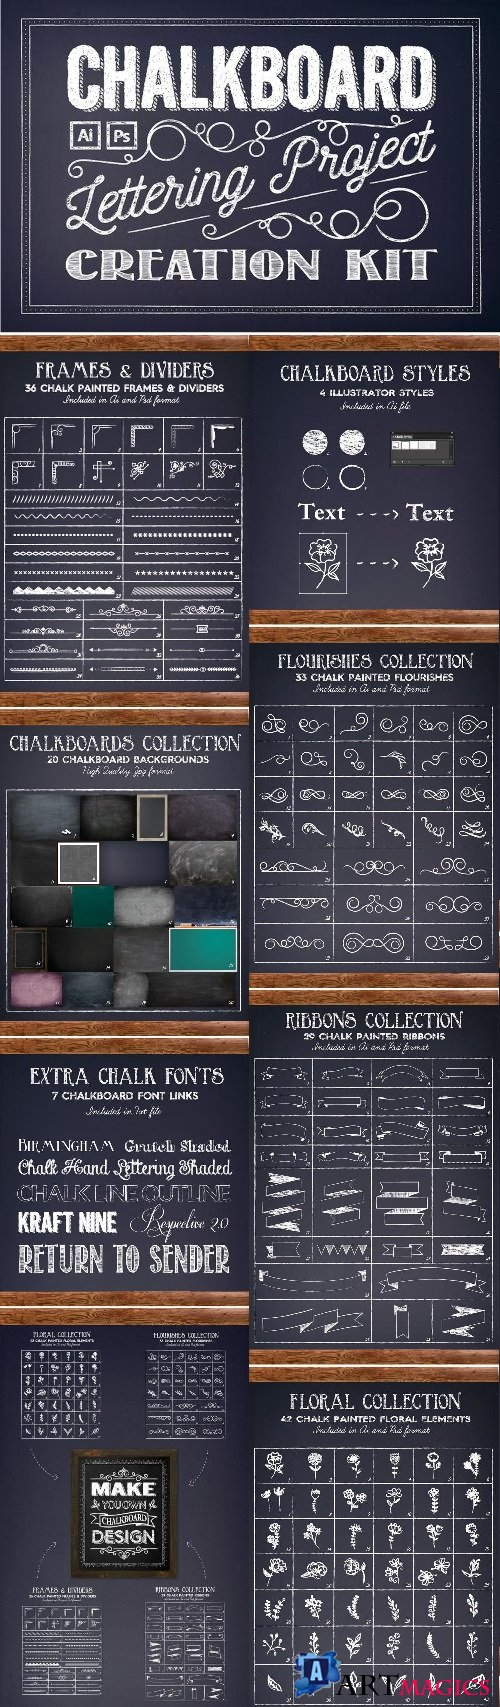 Chalkboard Lettering Project Kit - 1898148